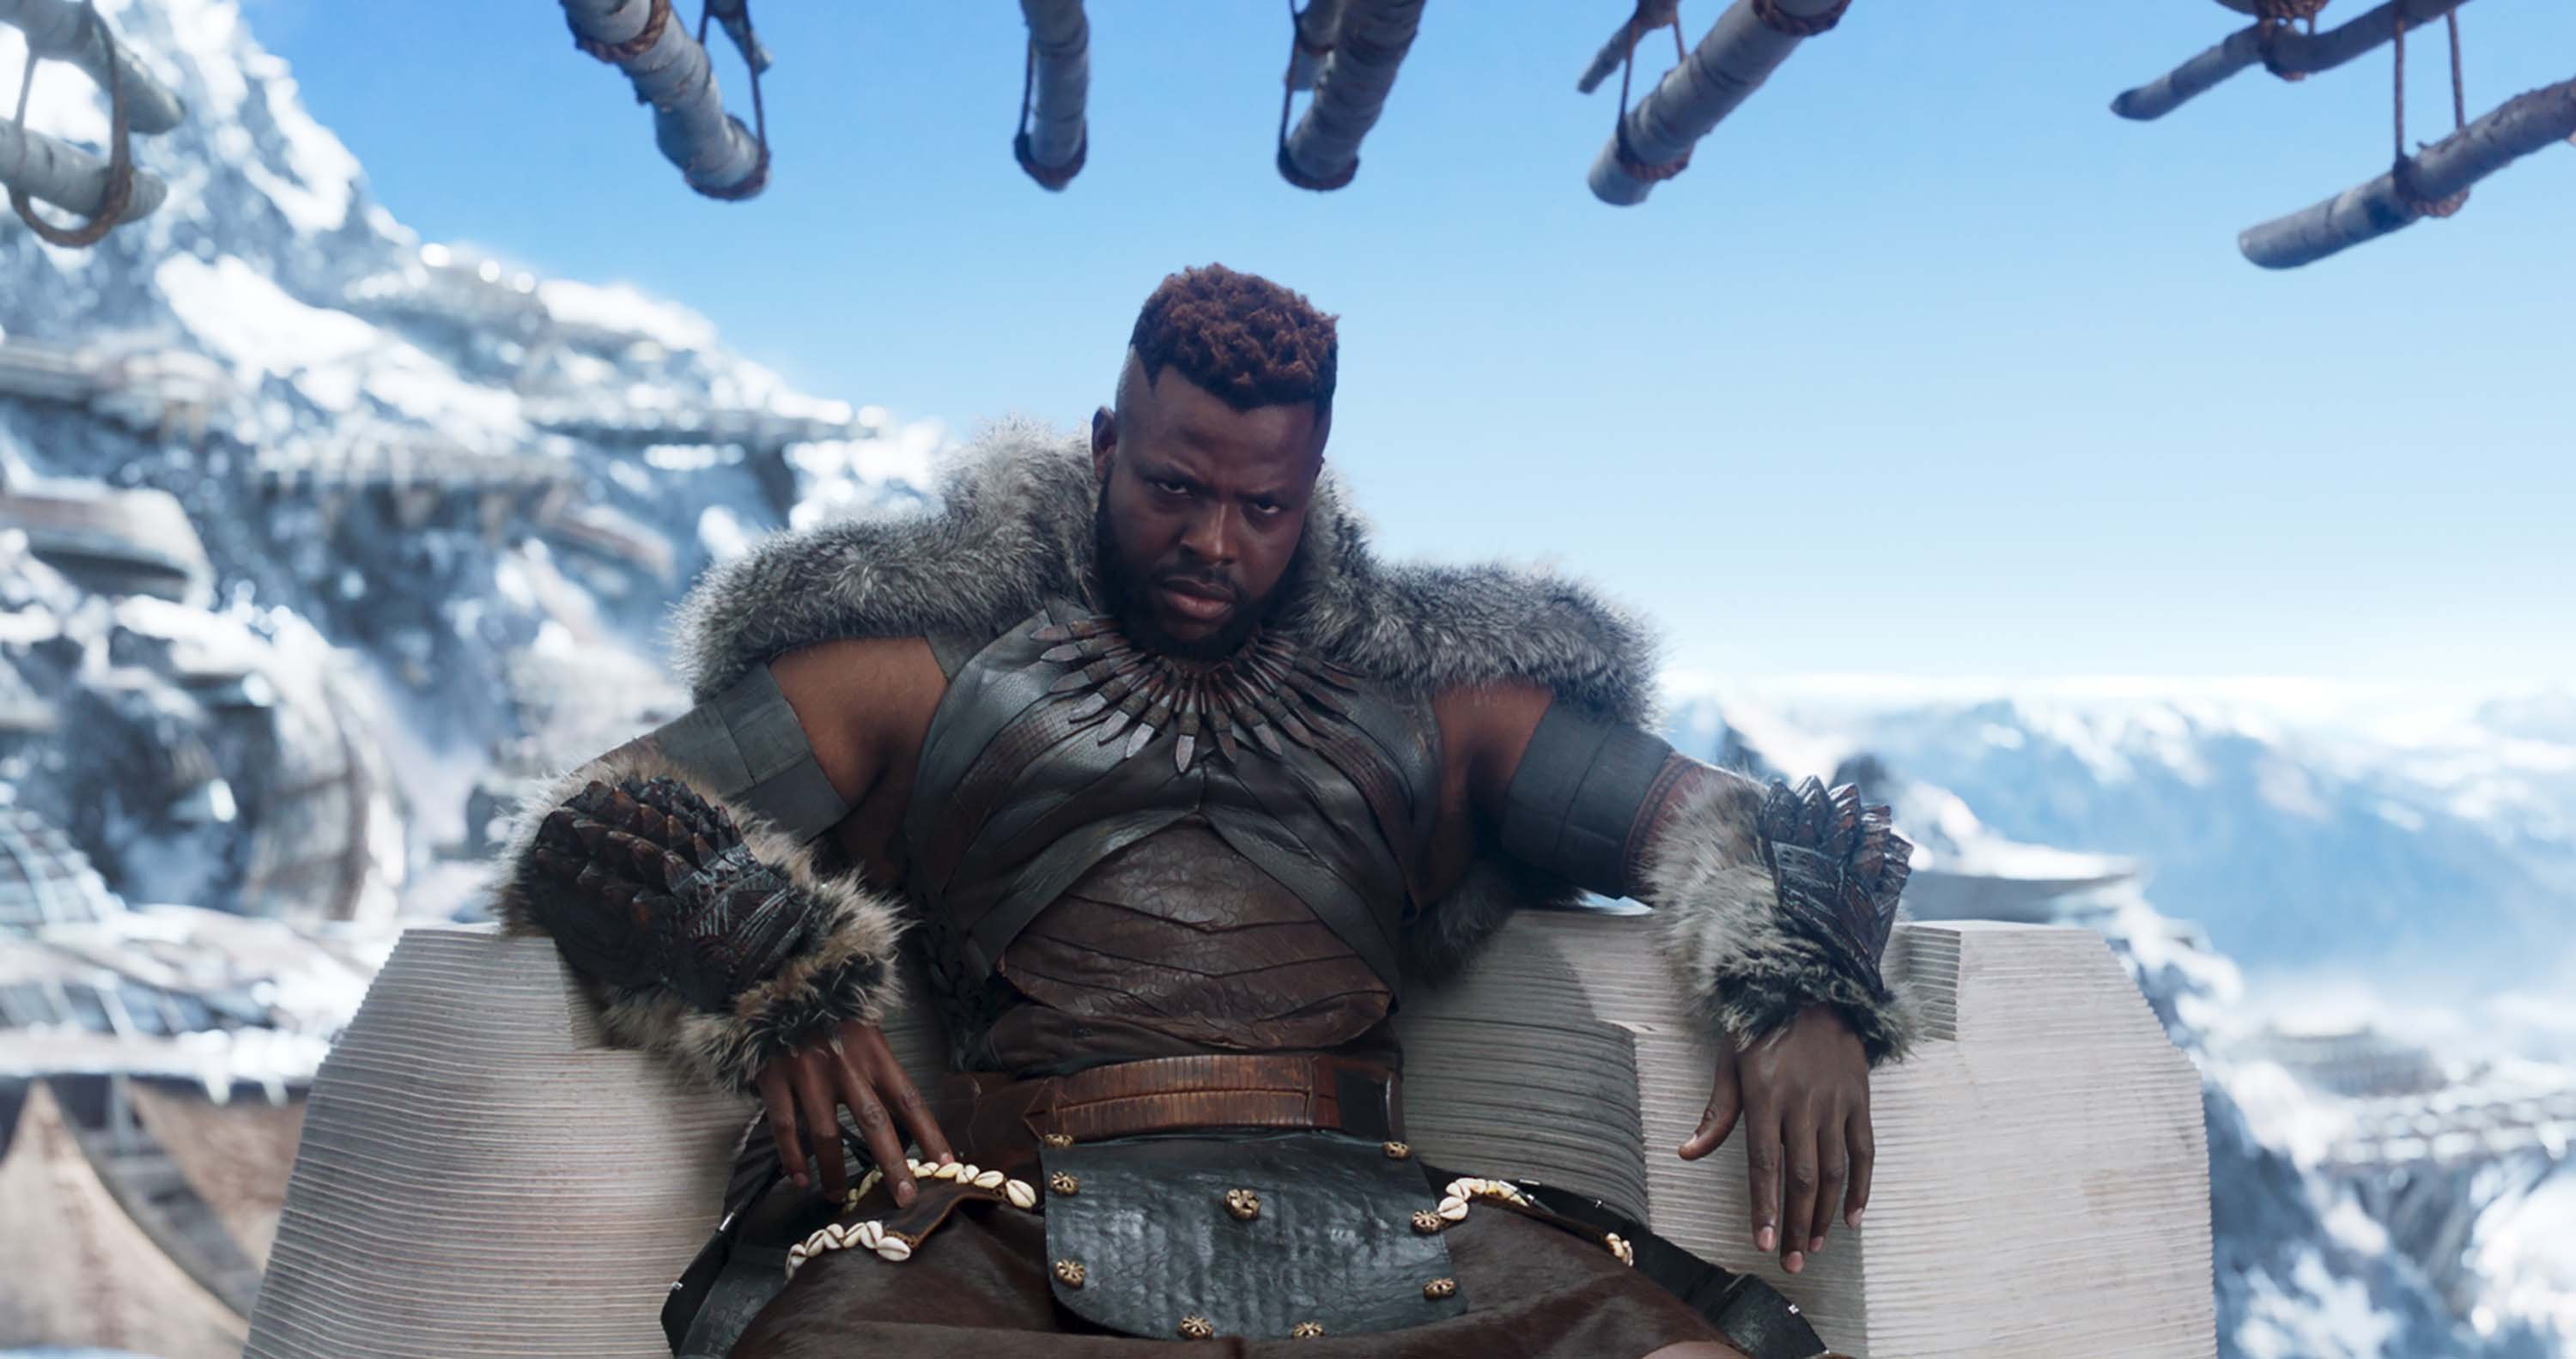 'Black Panther' becomes most tweeted about movie of all time